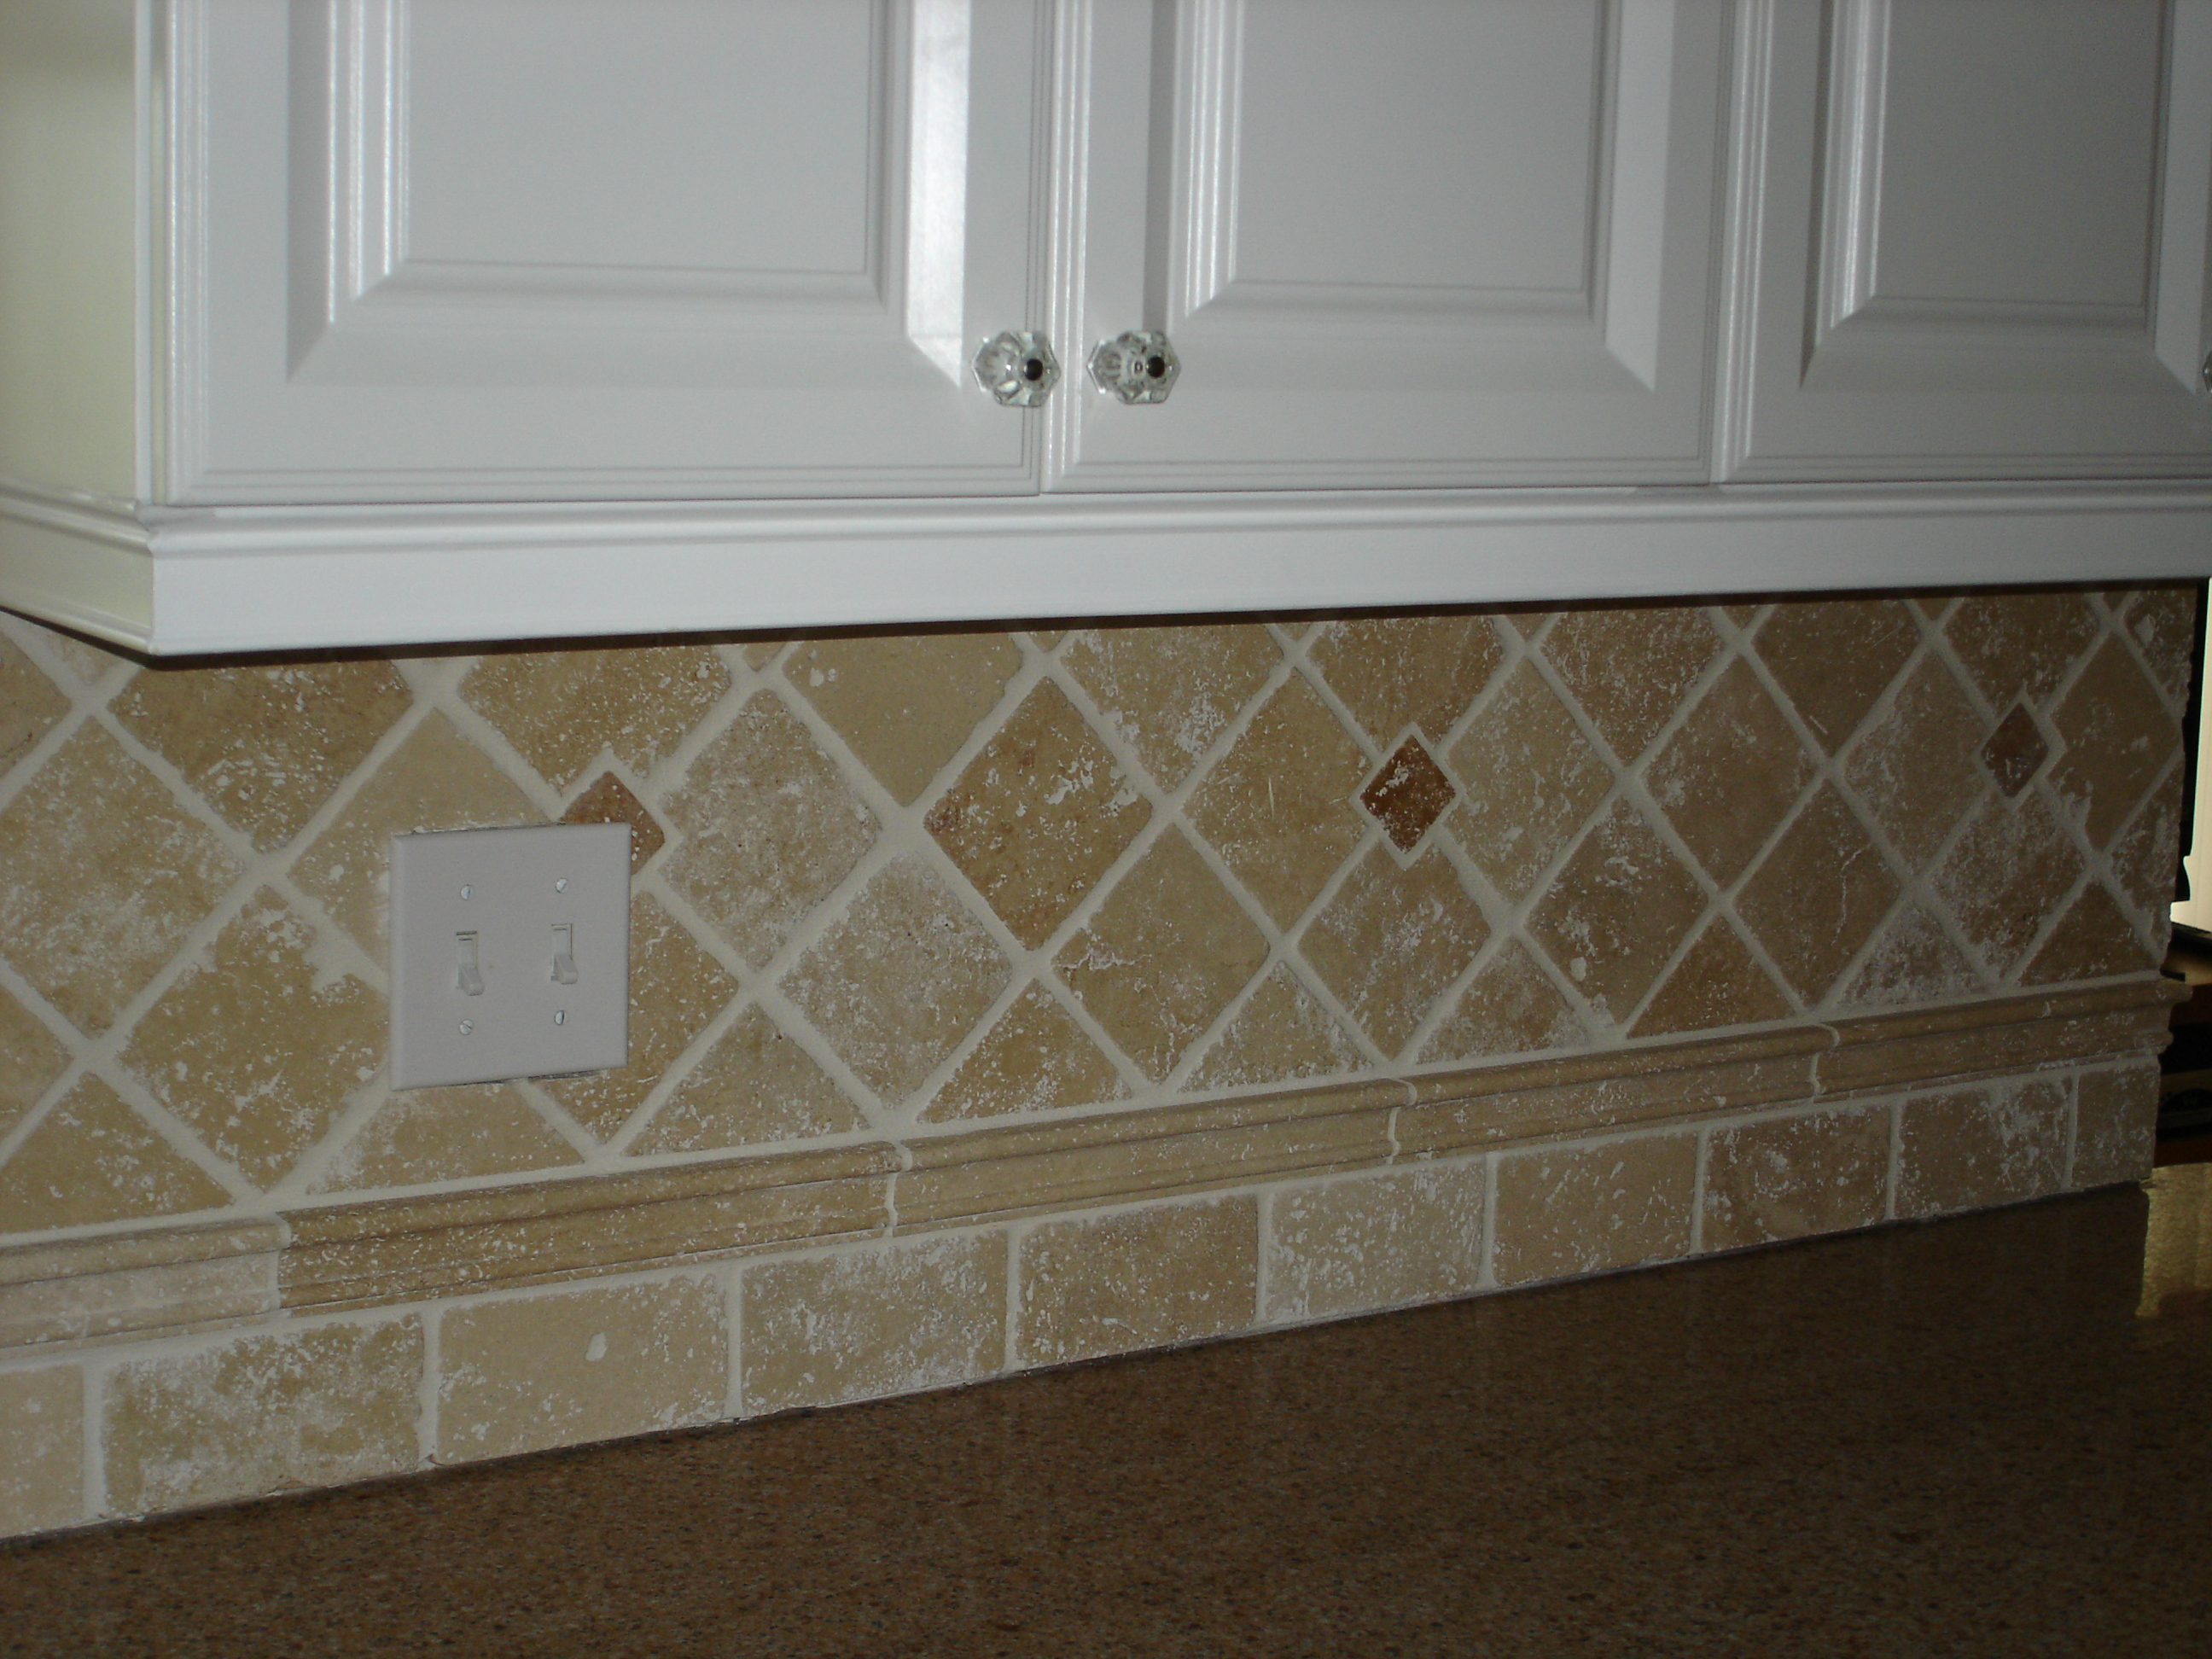 Backsplash Tile Tile Backsplashe Central Nj, Jackson, Freehold, Colts Neck